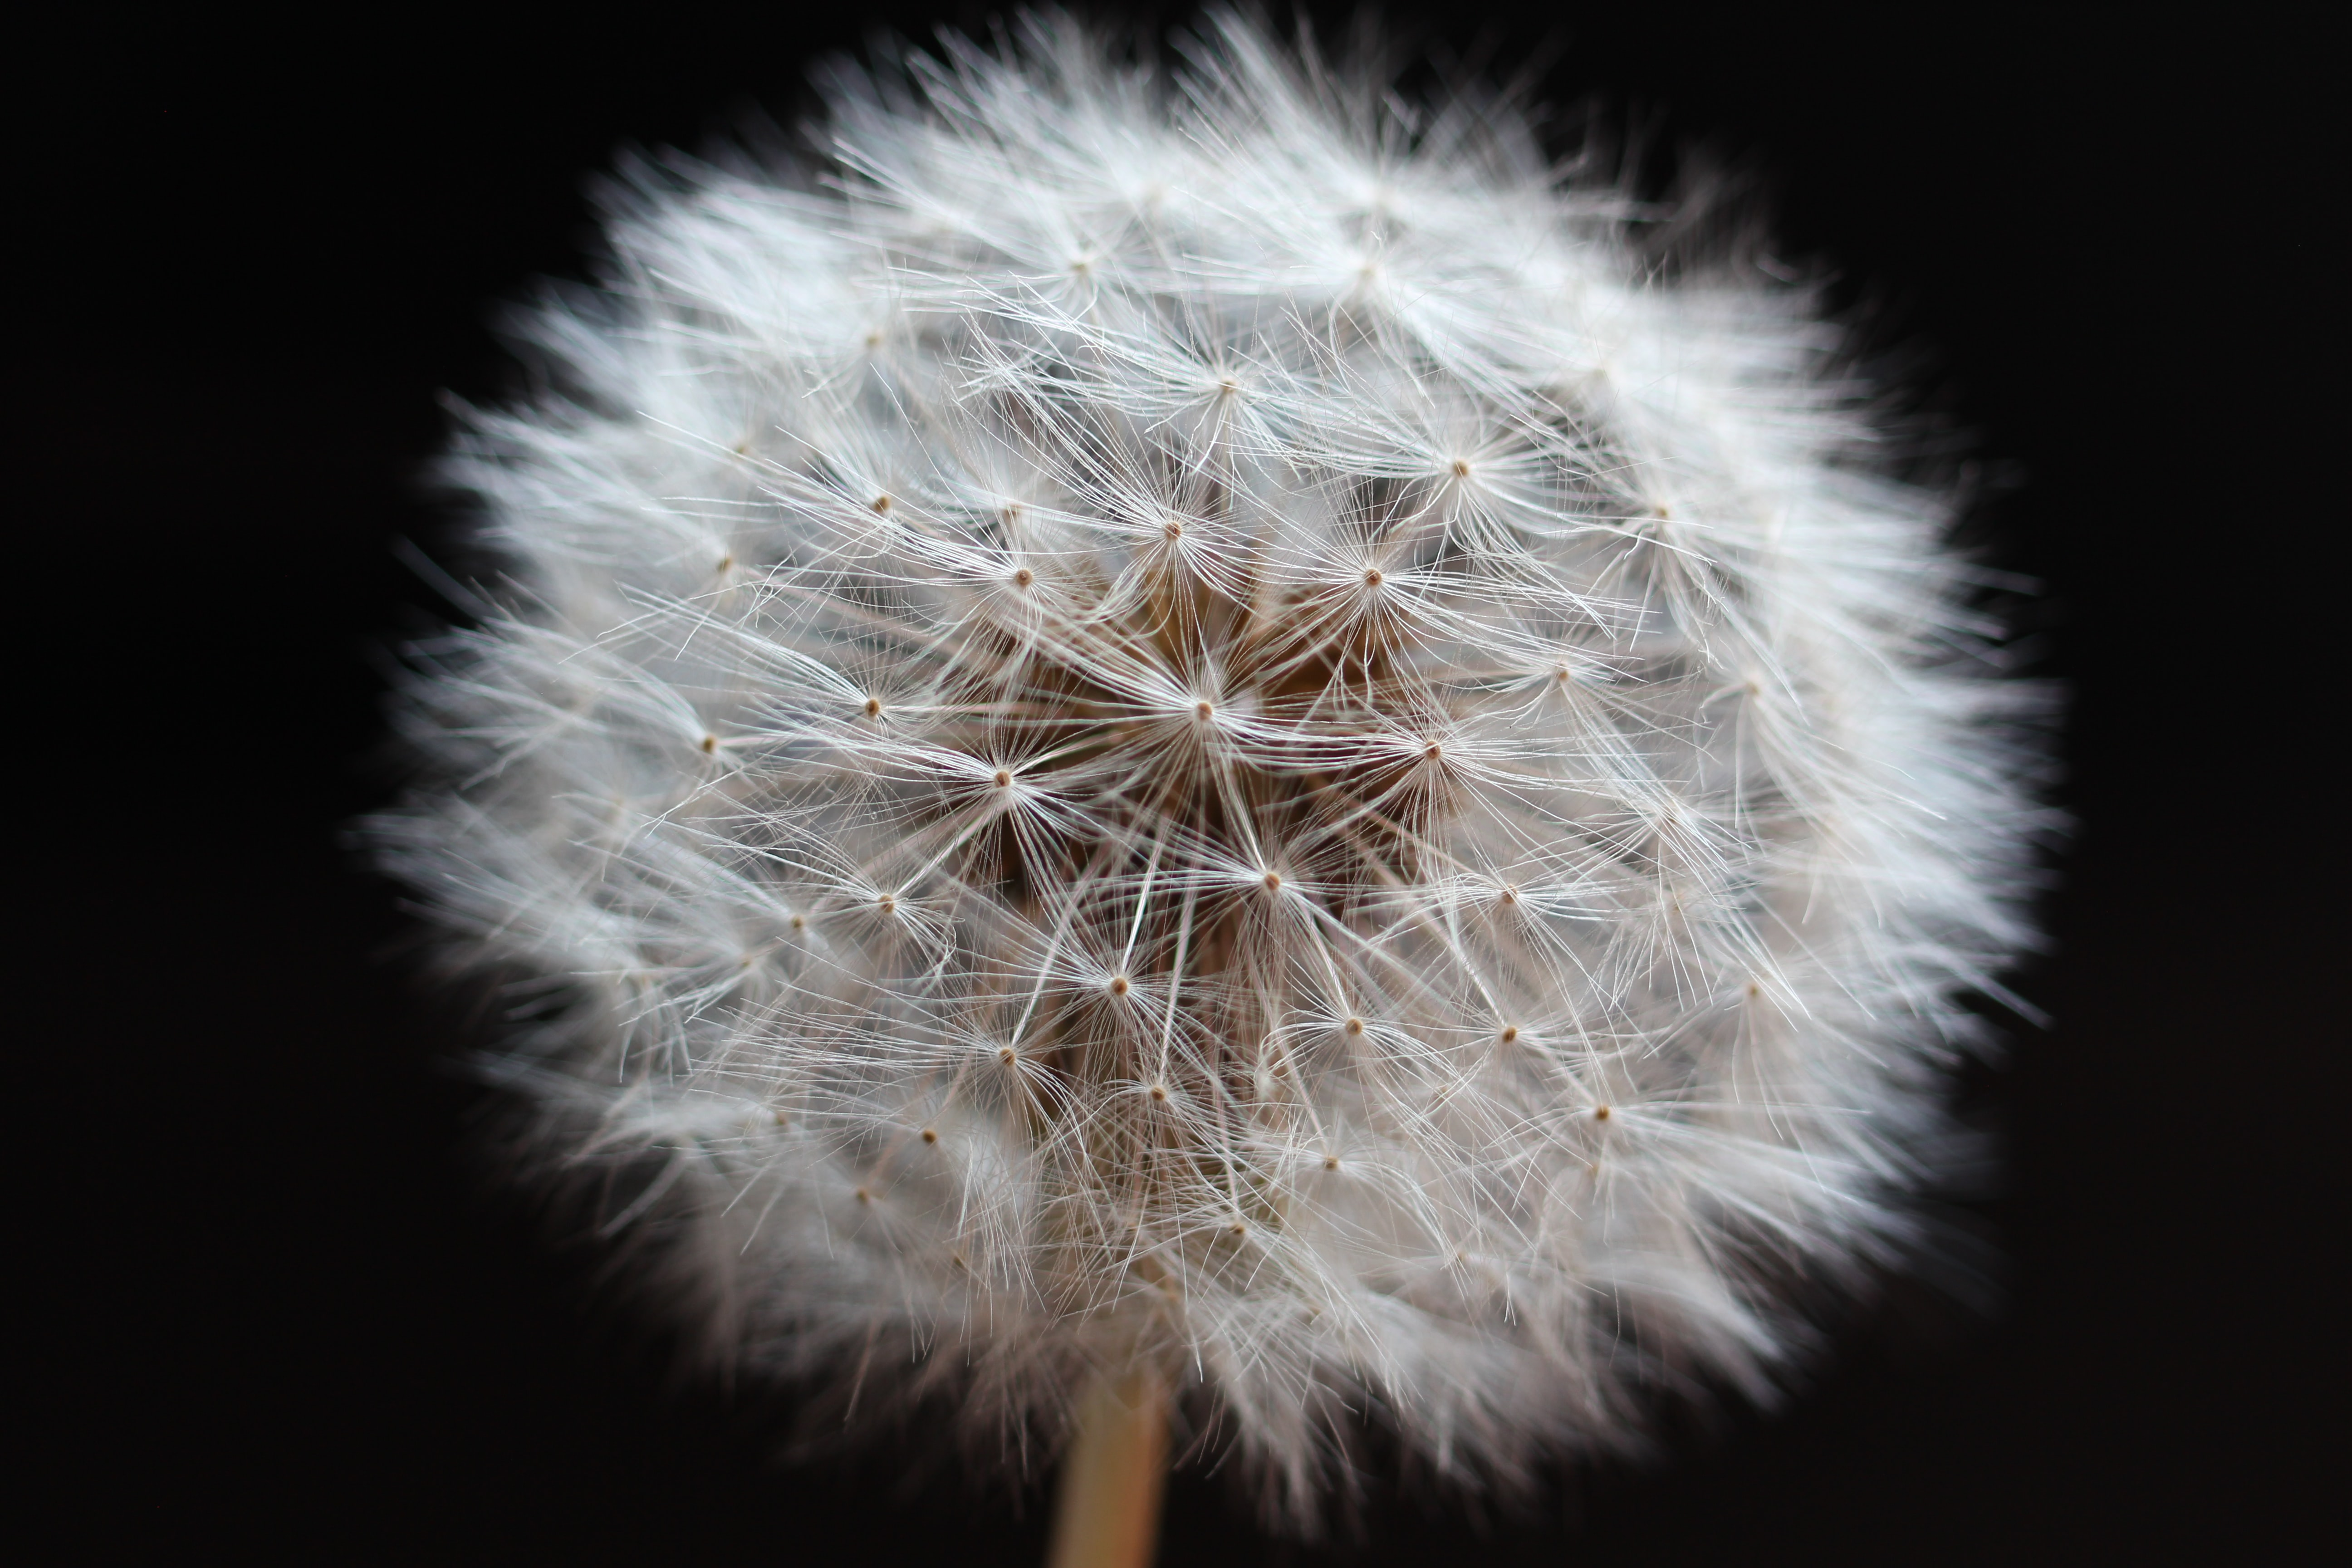 Close-up of a dandelion seed head covered in downy